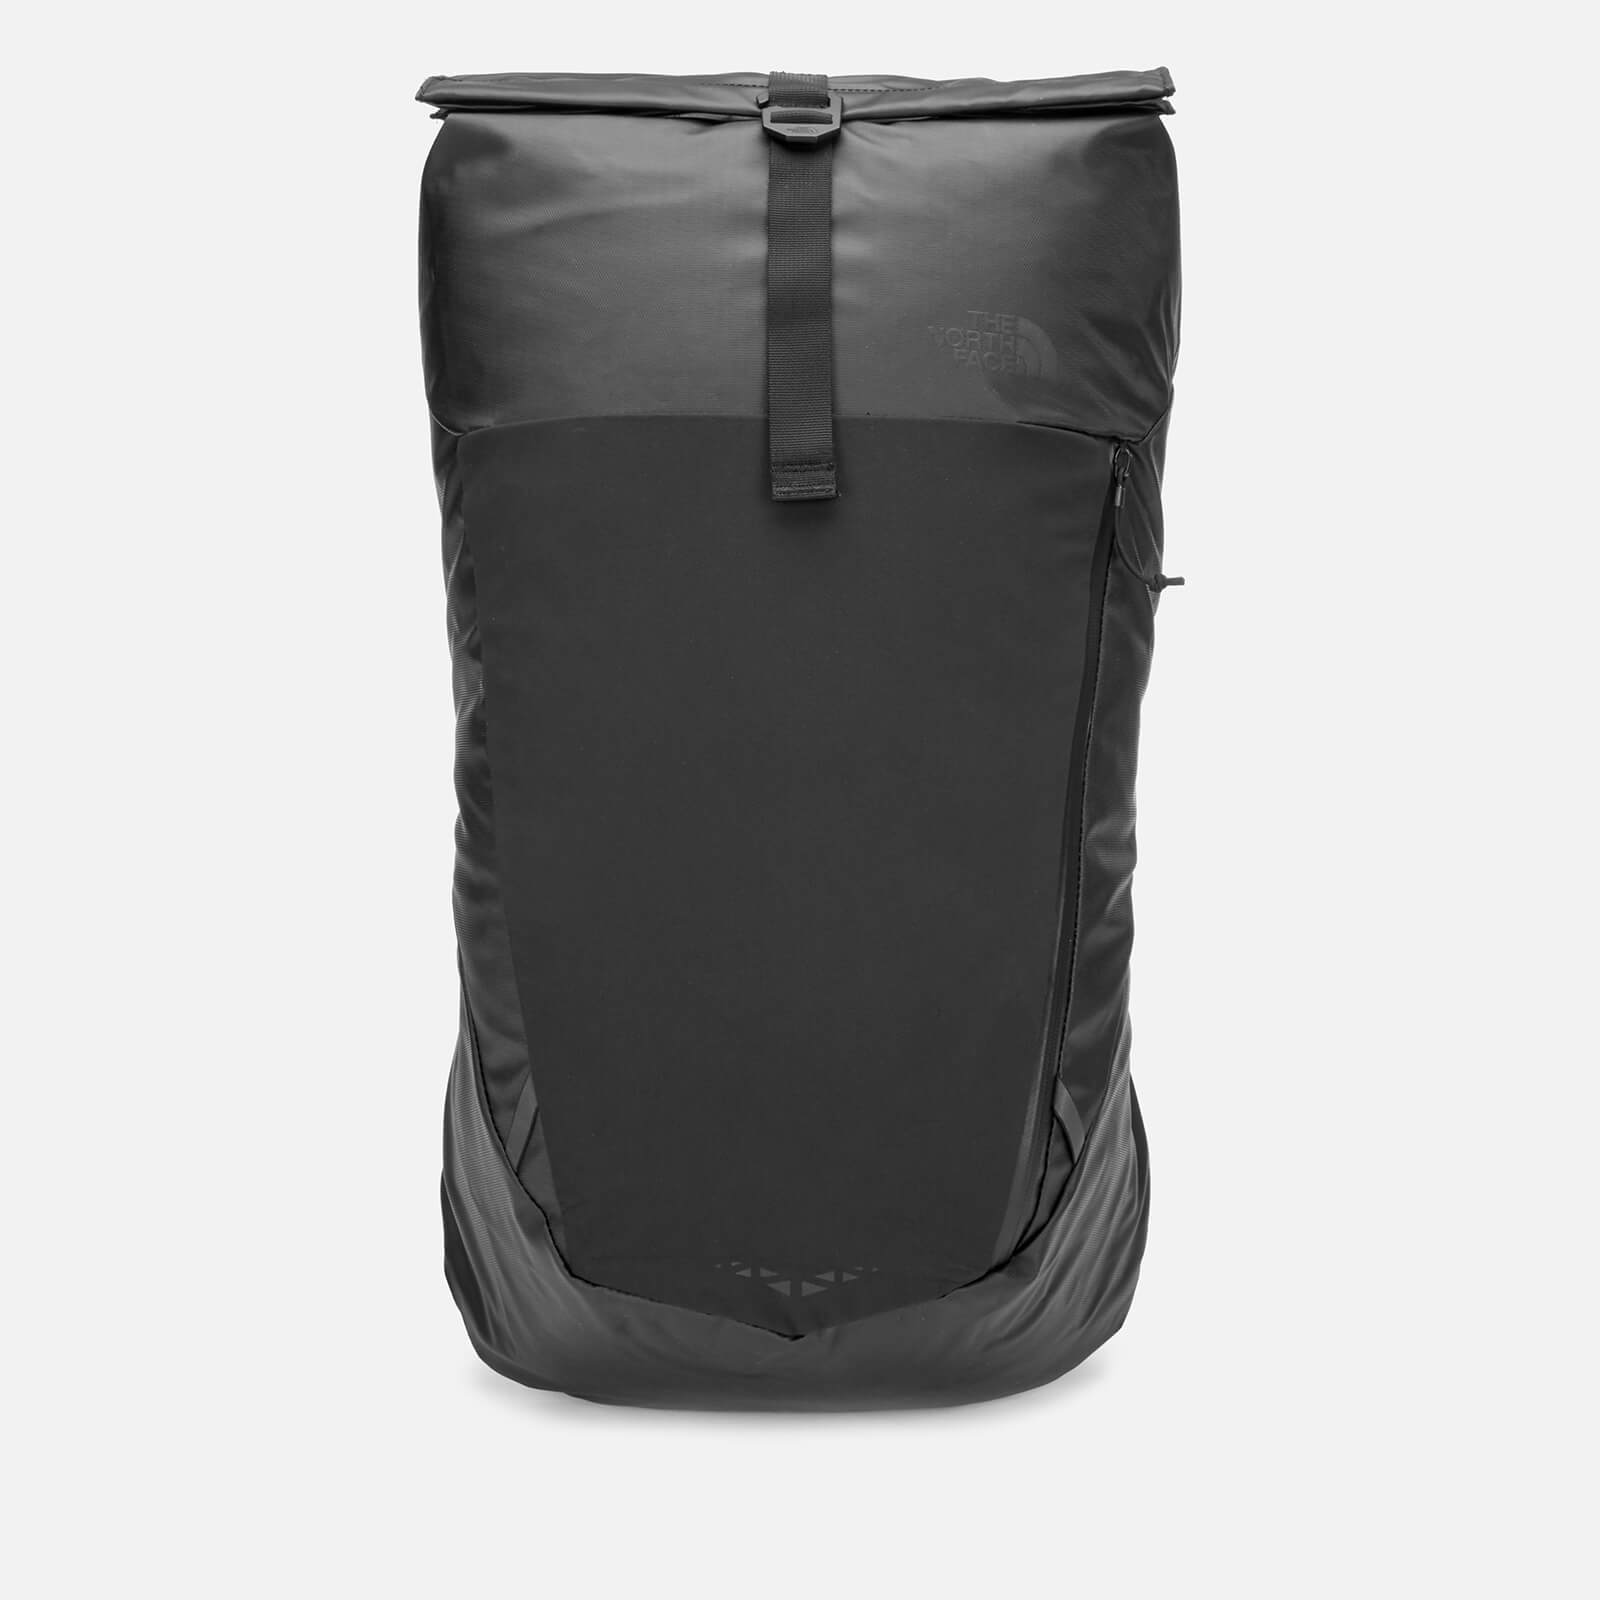 be6250798 The North Face Peckham Bag - TNF Black